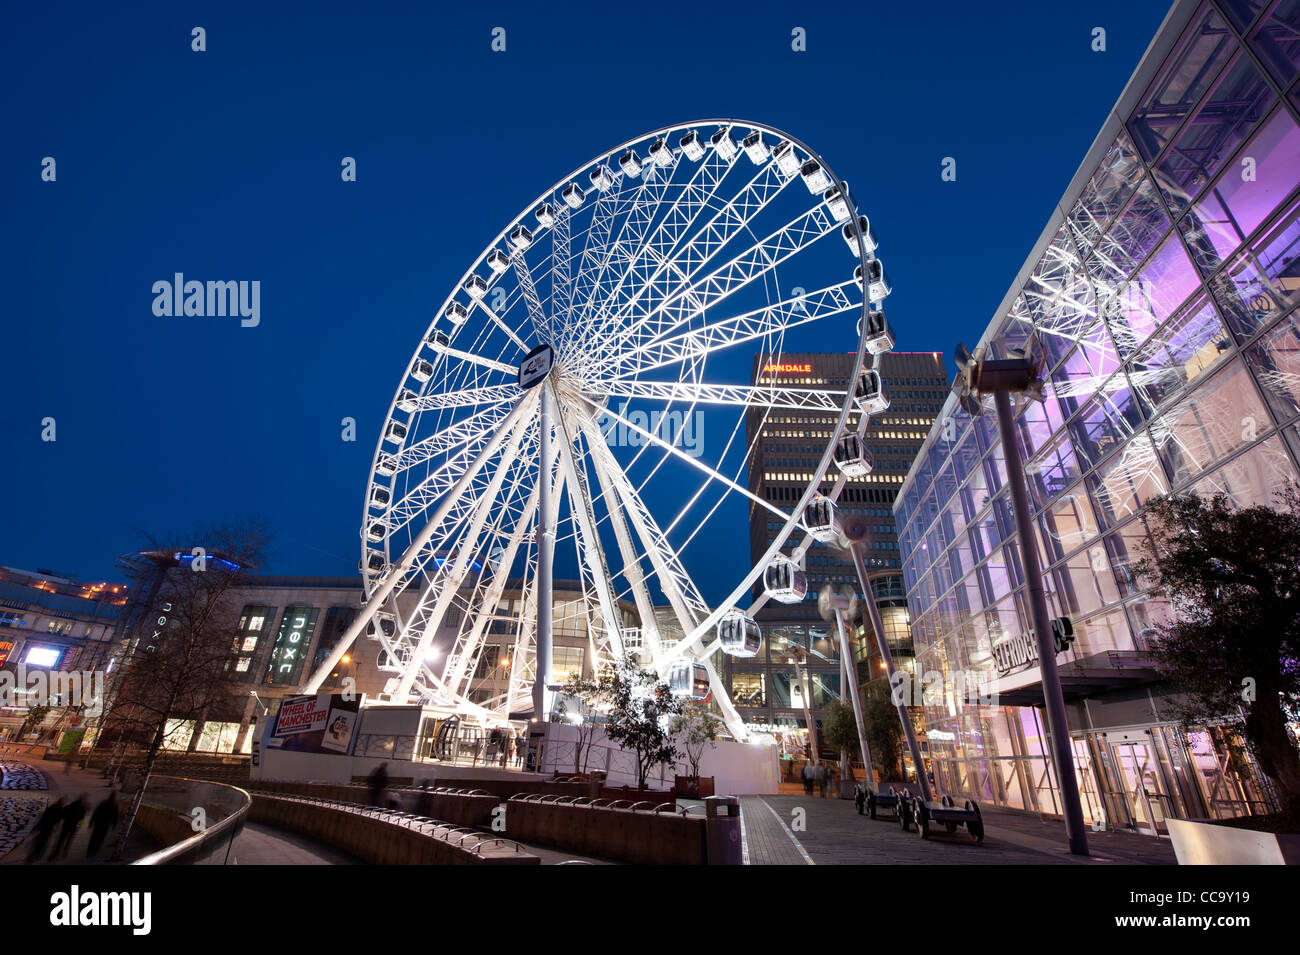 The Wheel of Manchester public ferris wheel in Exchange Square. Stock Photo